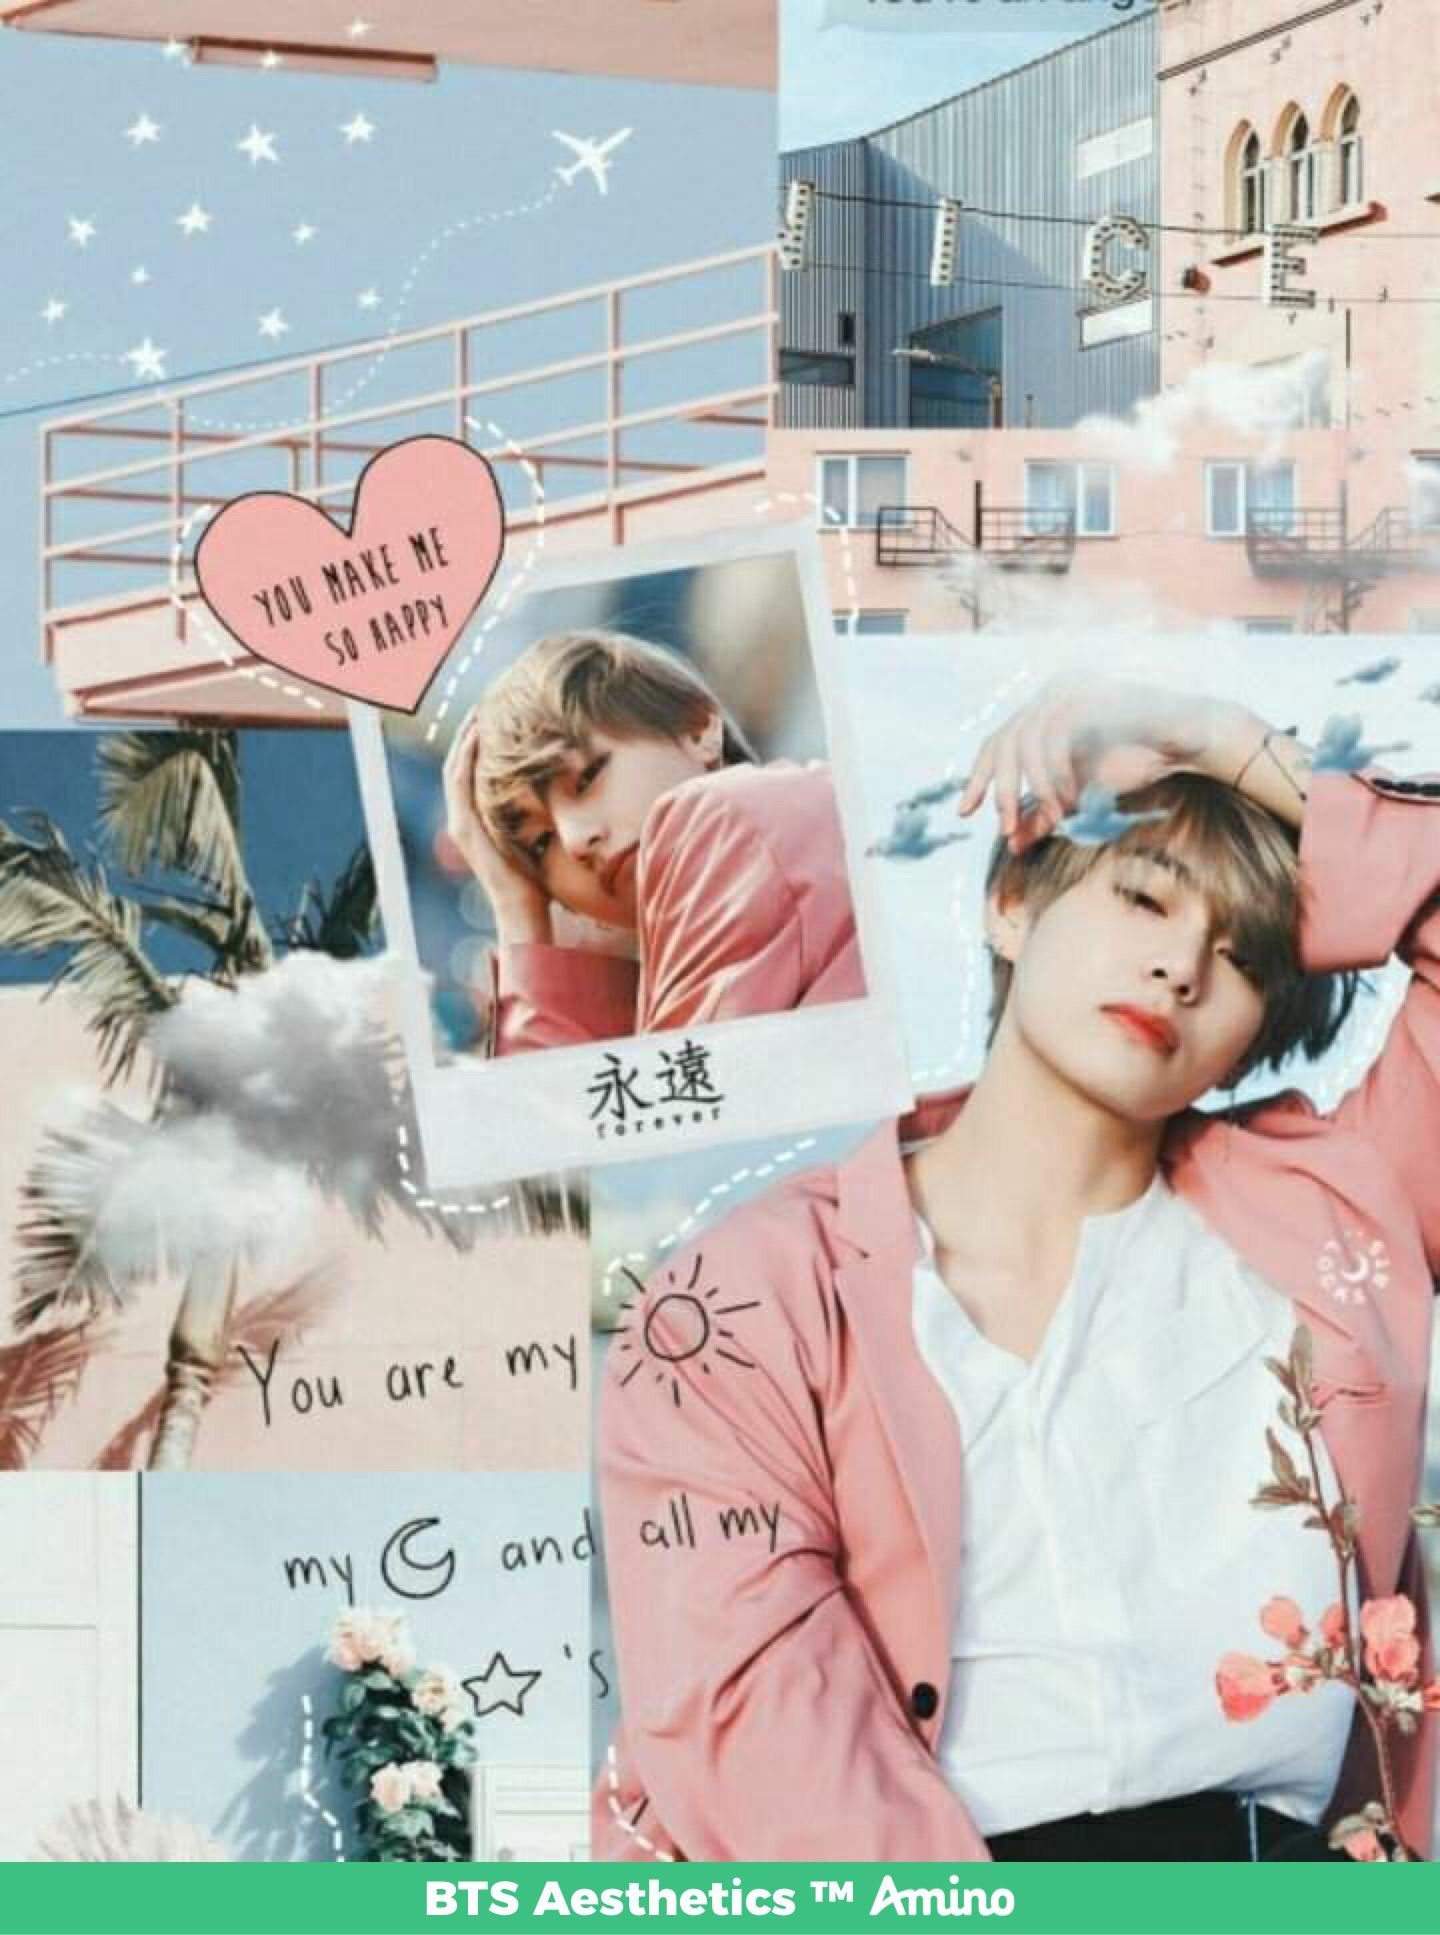 Pin By Alexandra Ocasio On Bts In 2019 Bts Taehyung Bts Taehyung Bts Taehyung Bts Wallpaper Taehyung